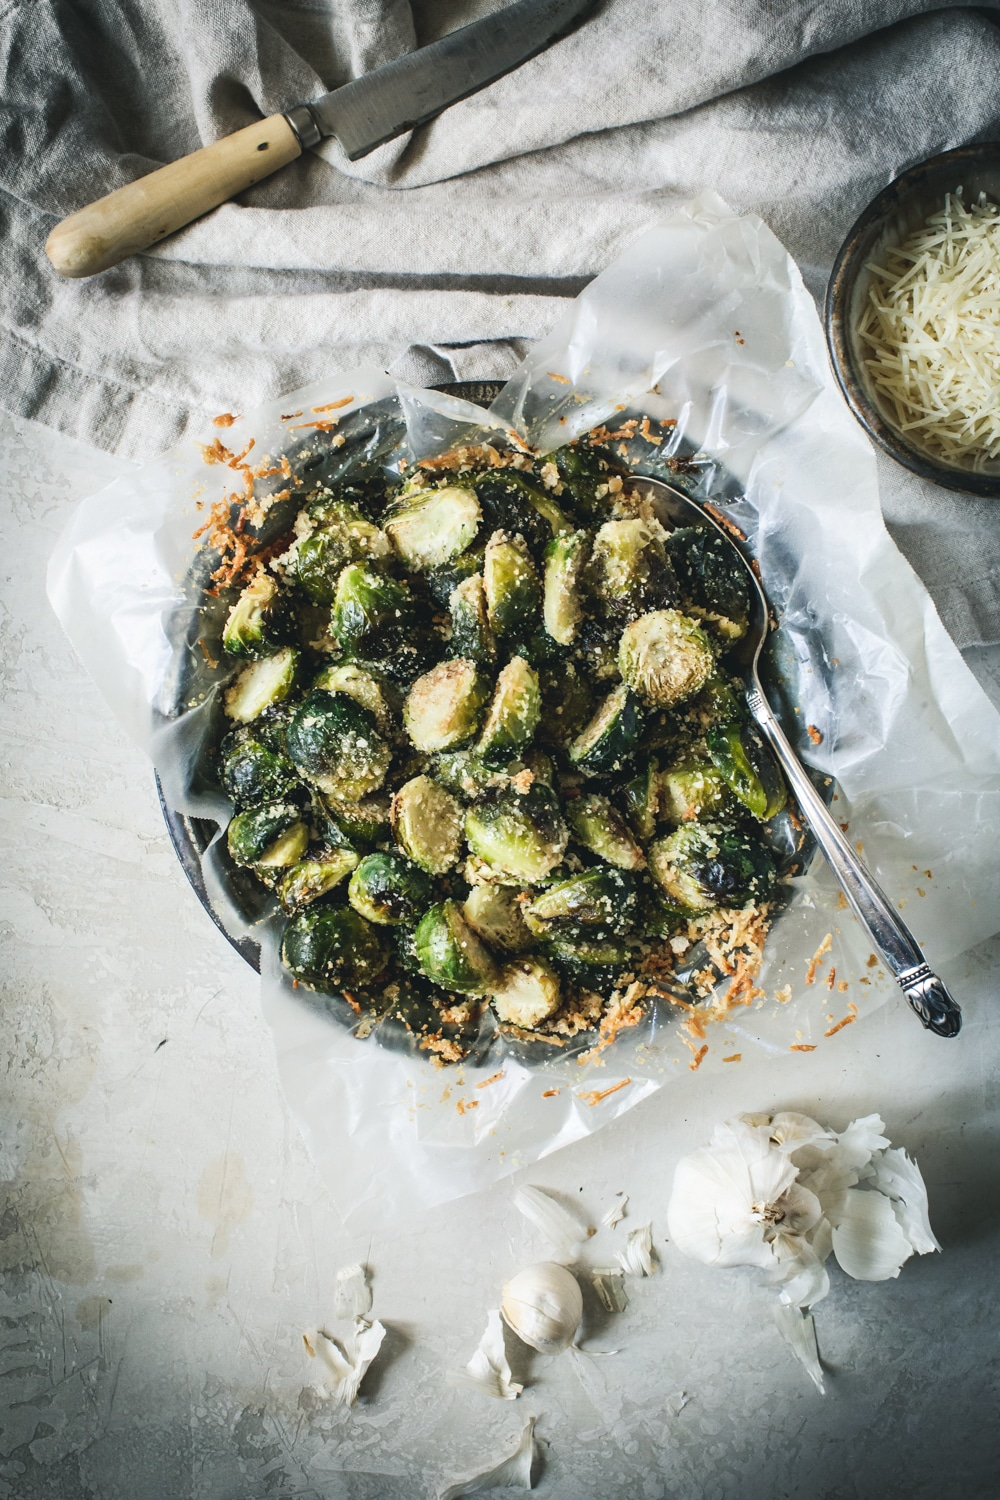 Brussel sprouts roasted and covered with shaved parmesan in a metal tin with silver serving spoon.